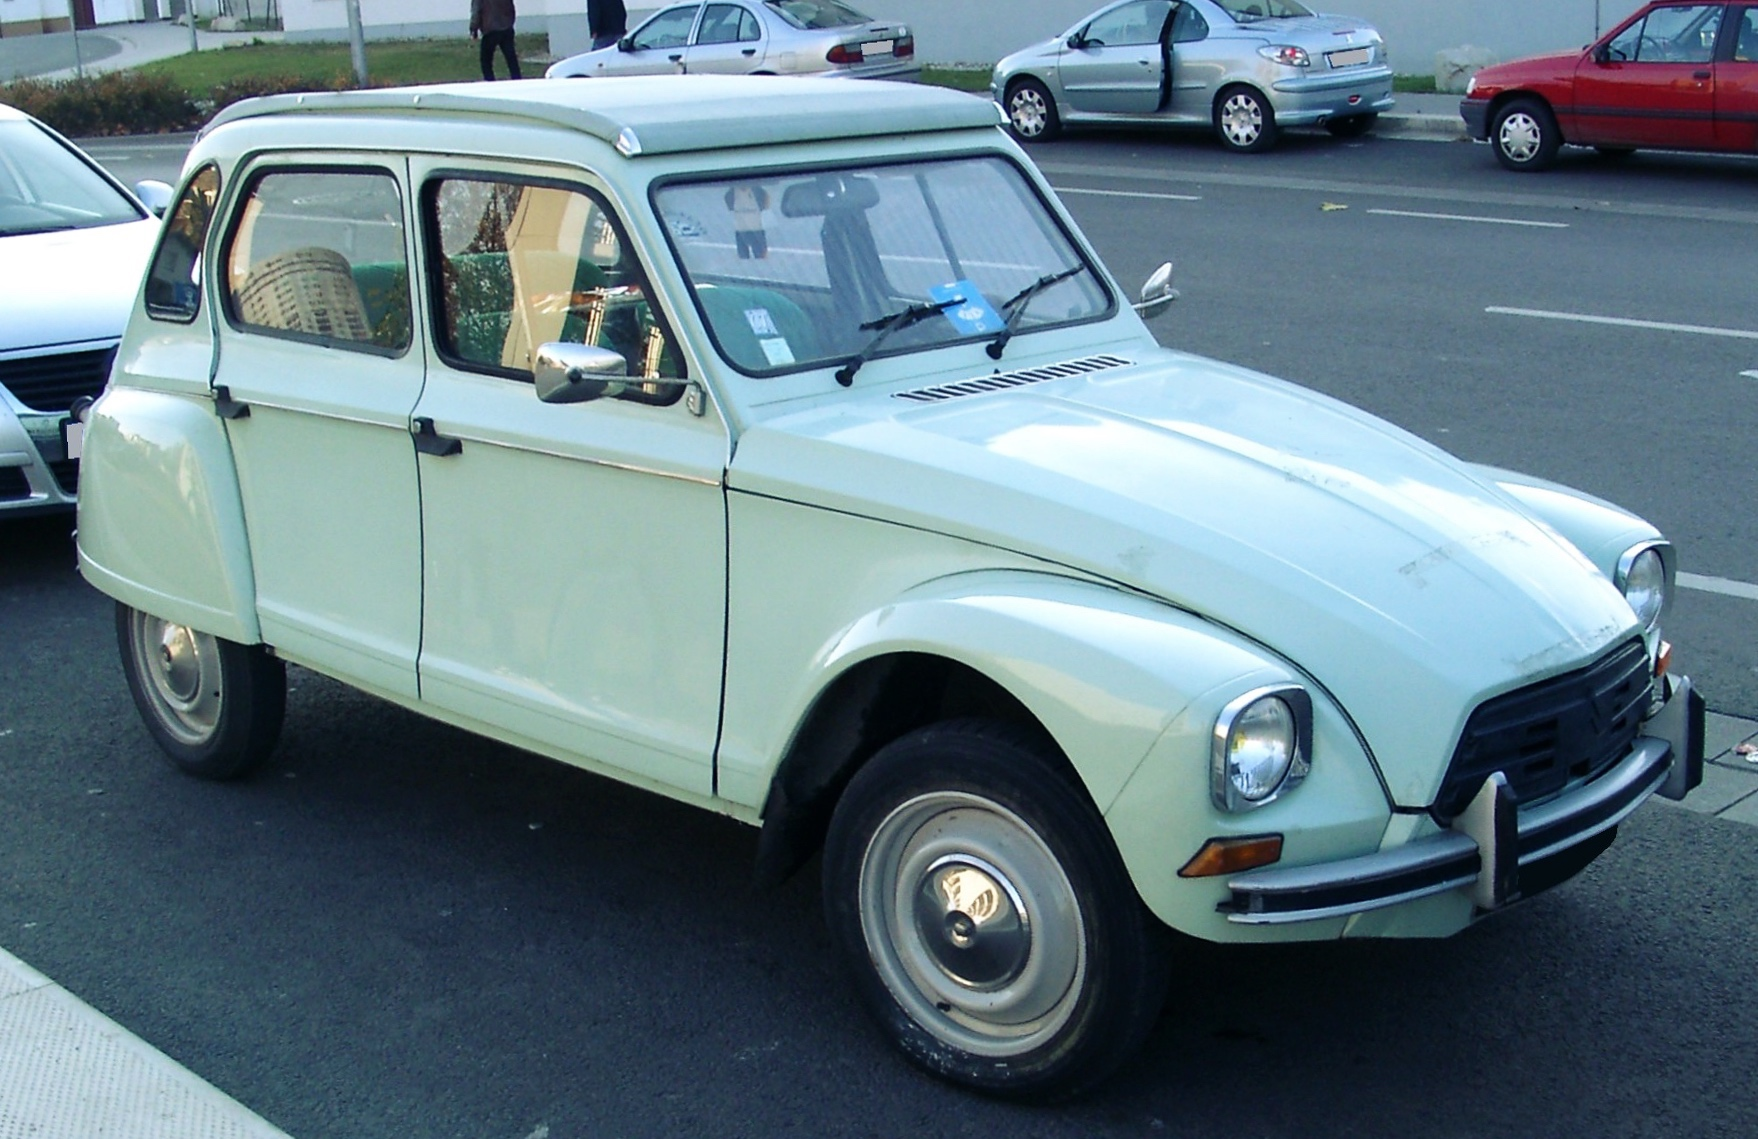 The rather unsexy Citroen Dyane.